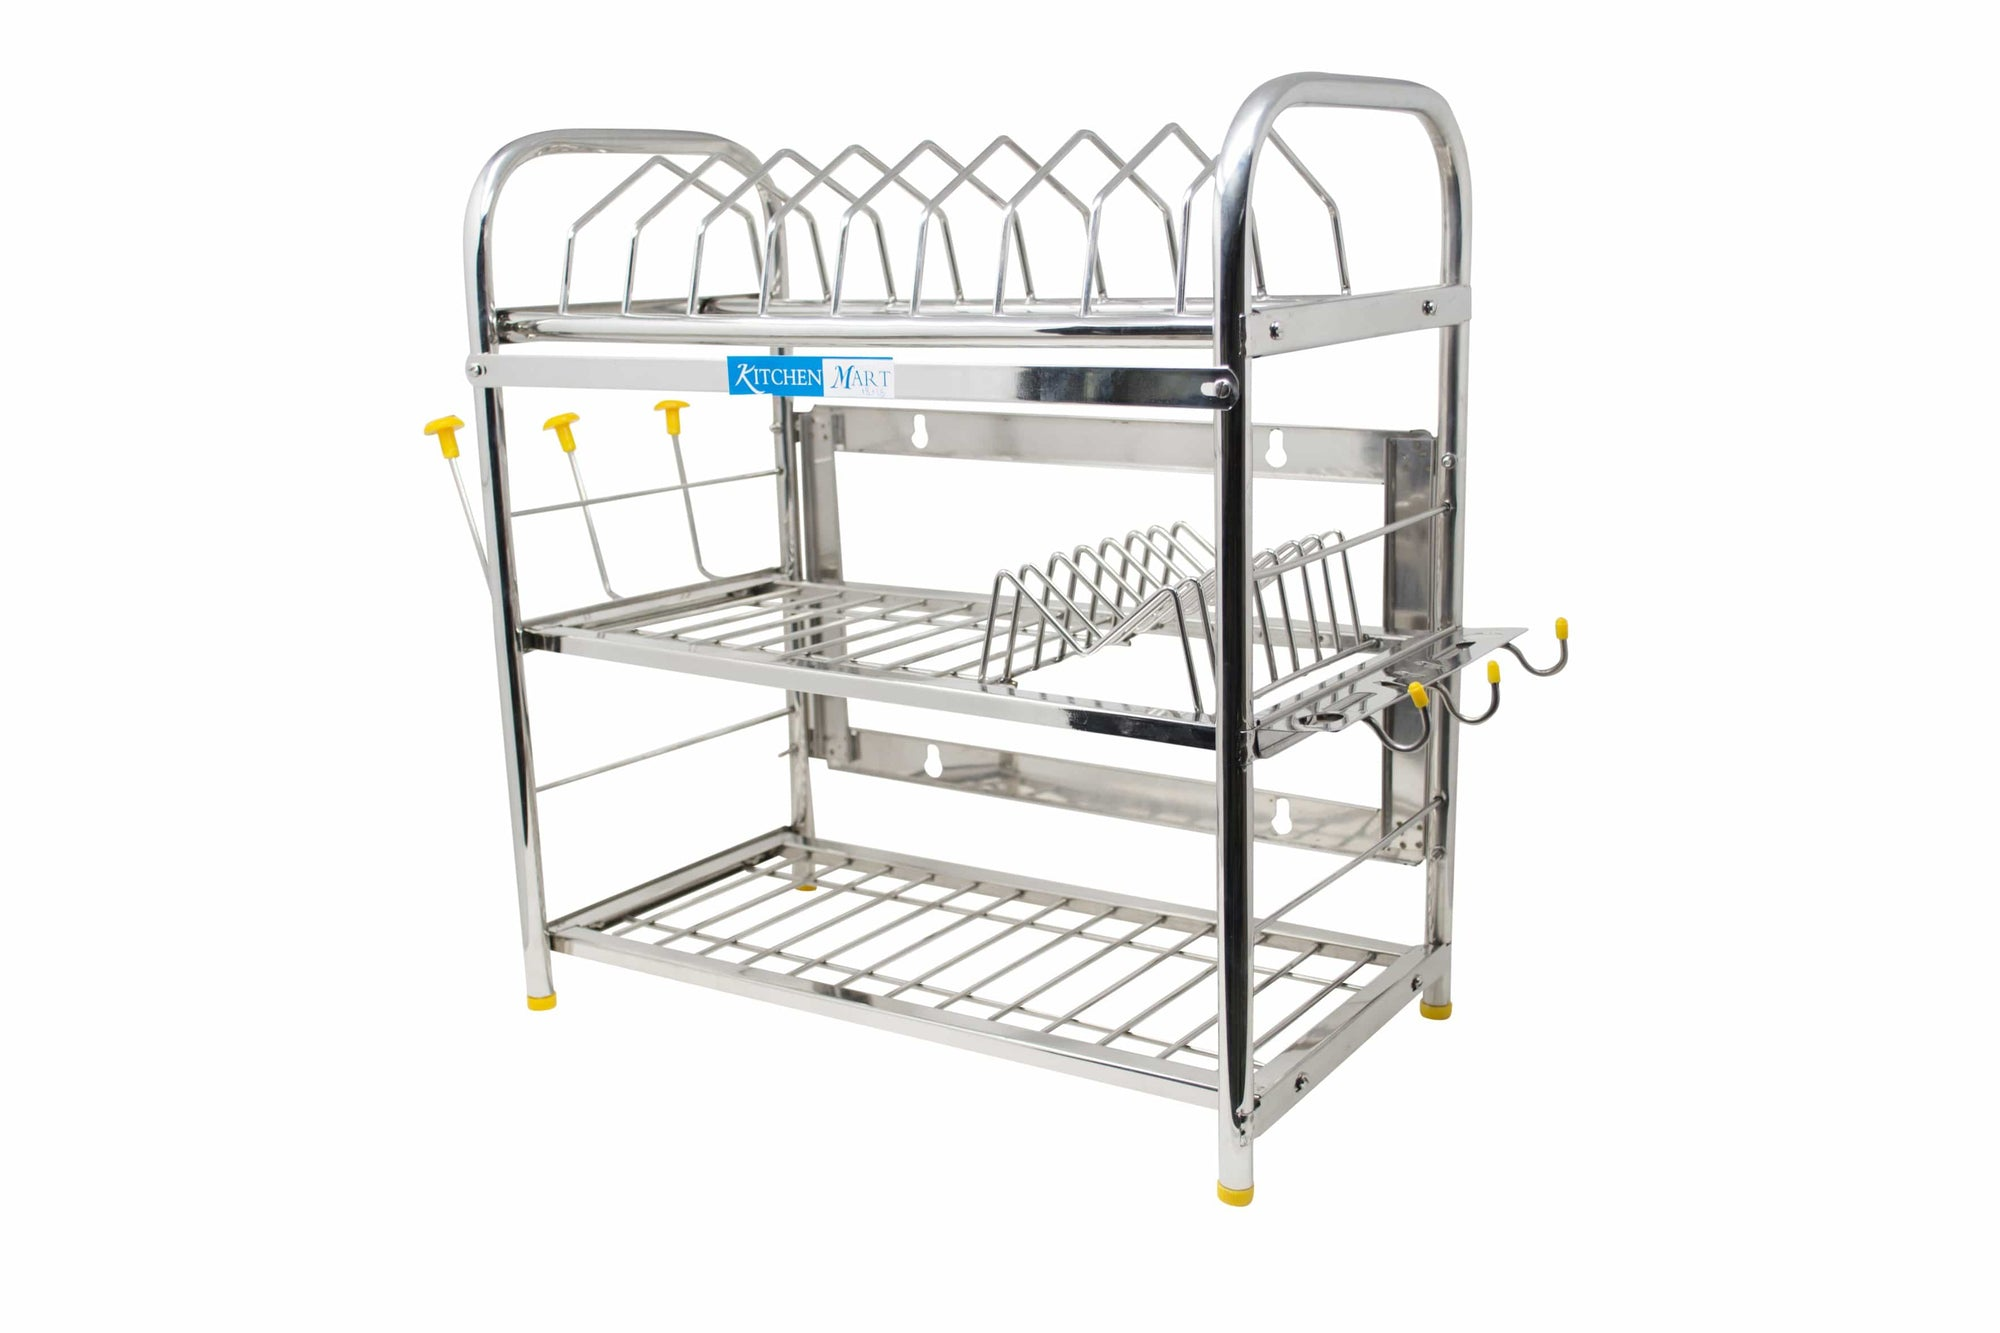 Kitchen Mart Stainless Steel Kitchen Rack (18 x 18 inch) - KITCHEN MART